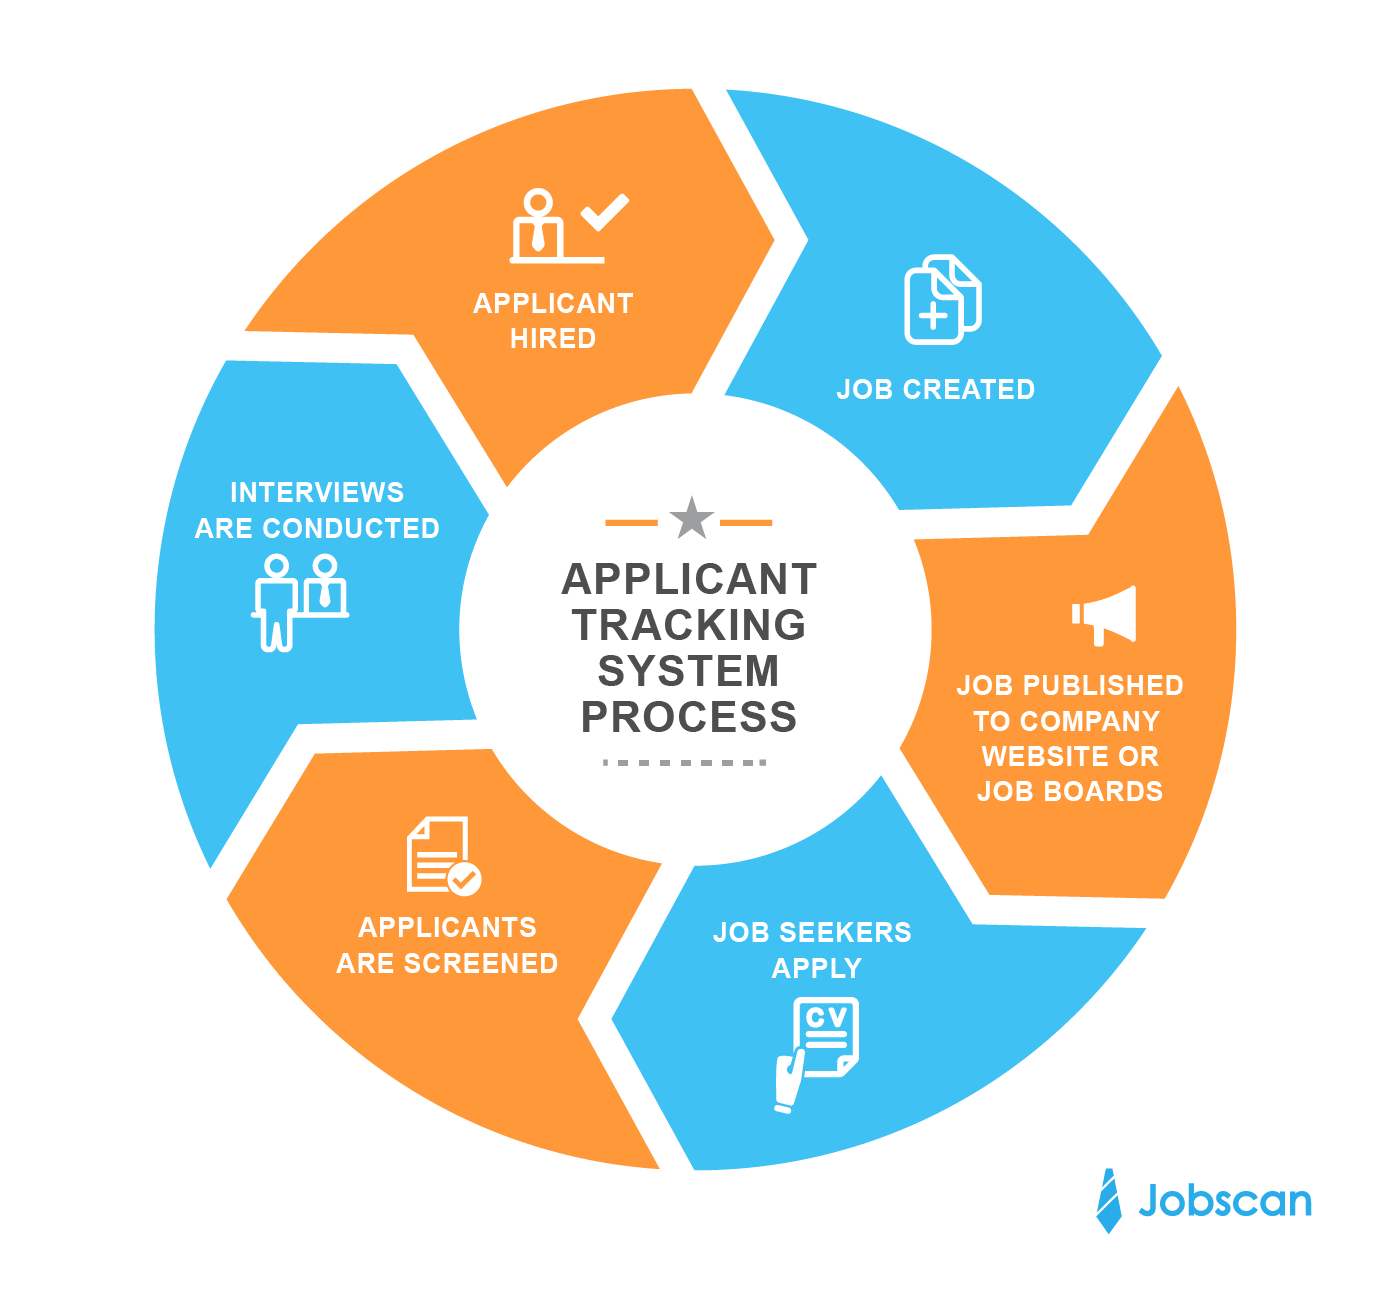 Jobscan's Guide to Applicant Tracking Systems and How to